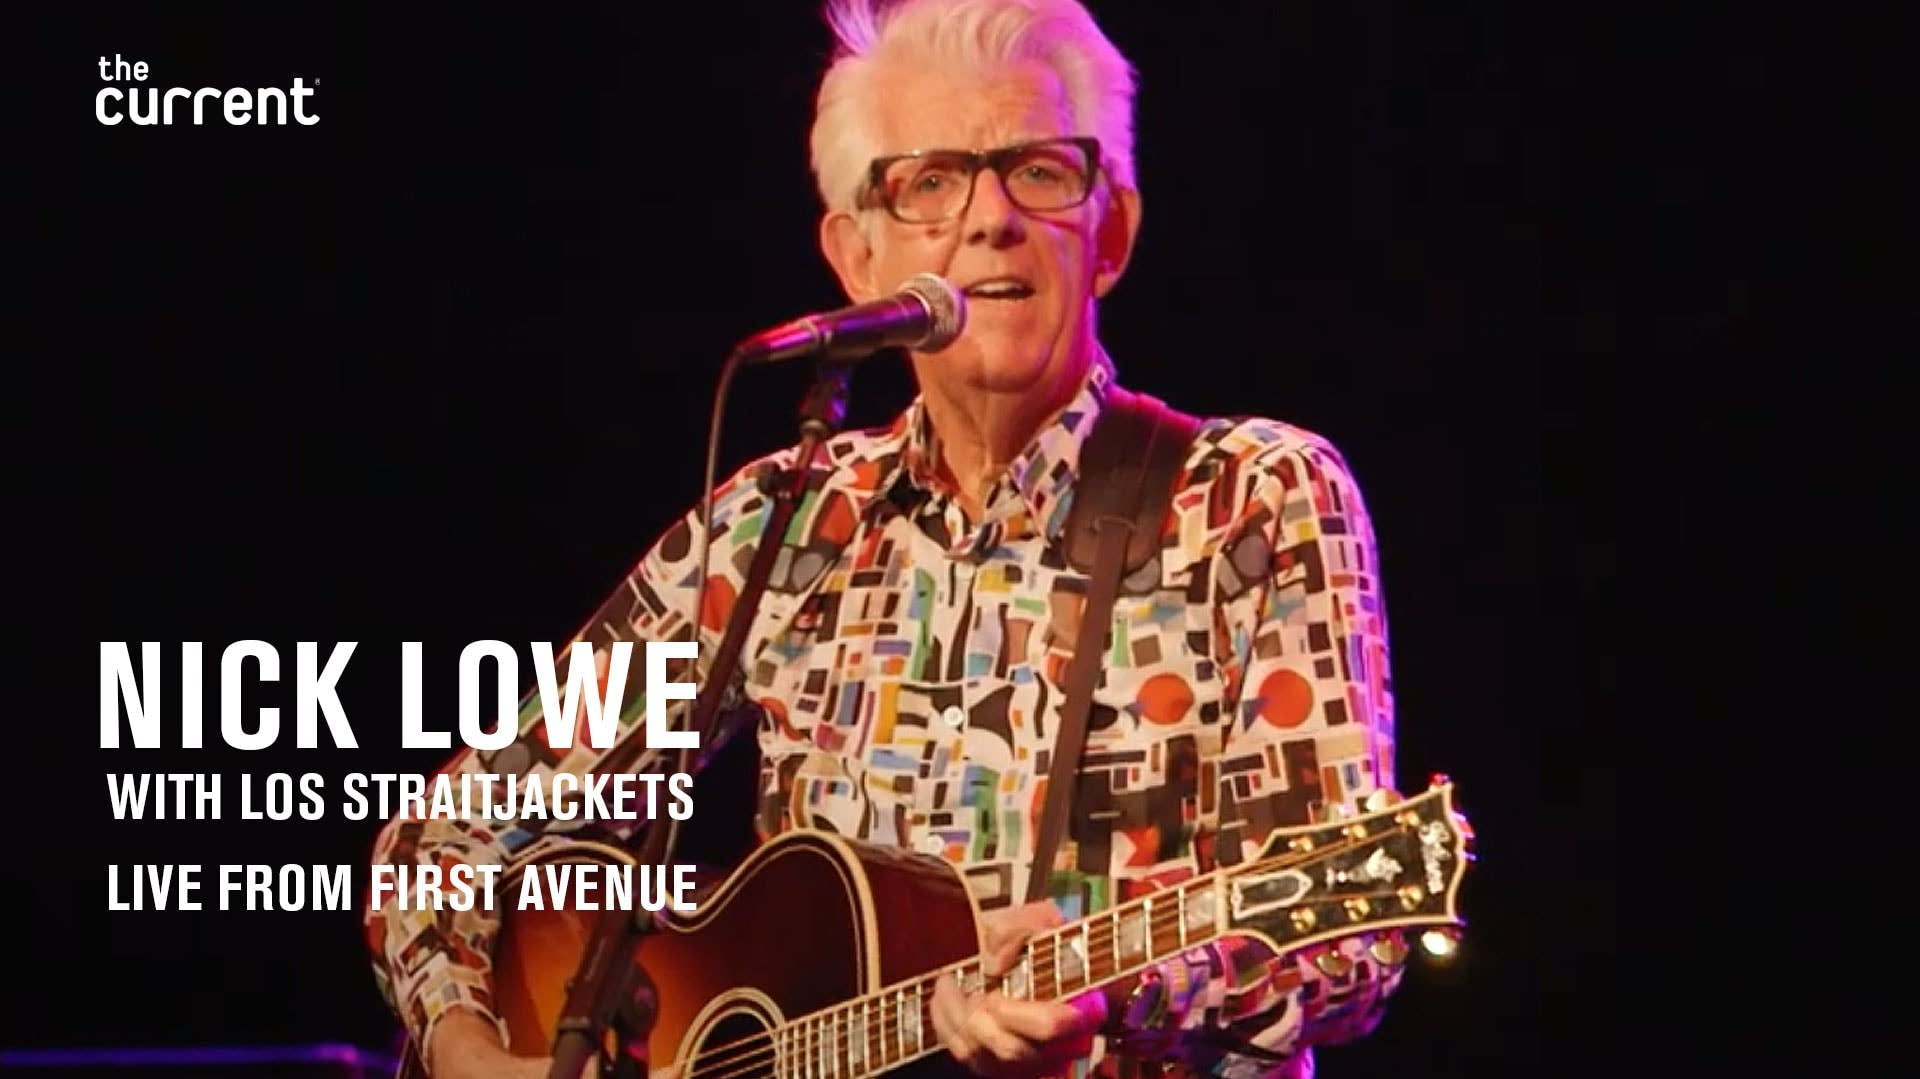 Nick Lowe at First Avenue